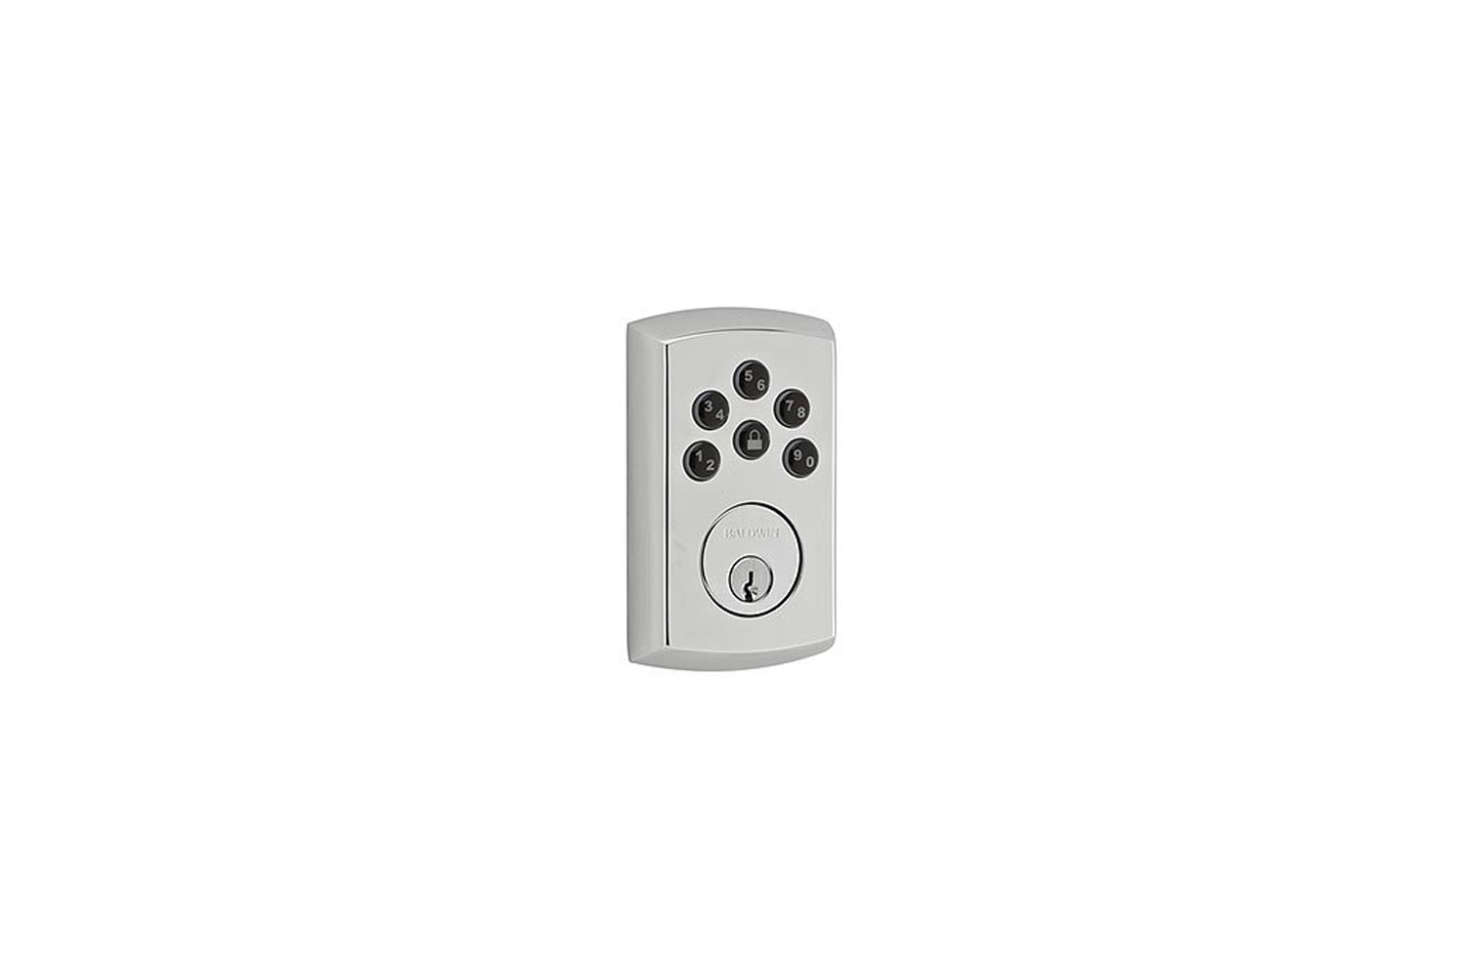 The Baldwin Soho Keyless Entry Single Cylinder Electronic Deadbolt in Polished Chrome features a keypad for the deadbolt only, to be paired with any lever. The lock allows only two different entry codes to be programmed. It&#8